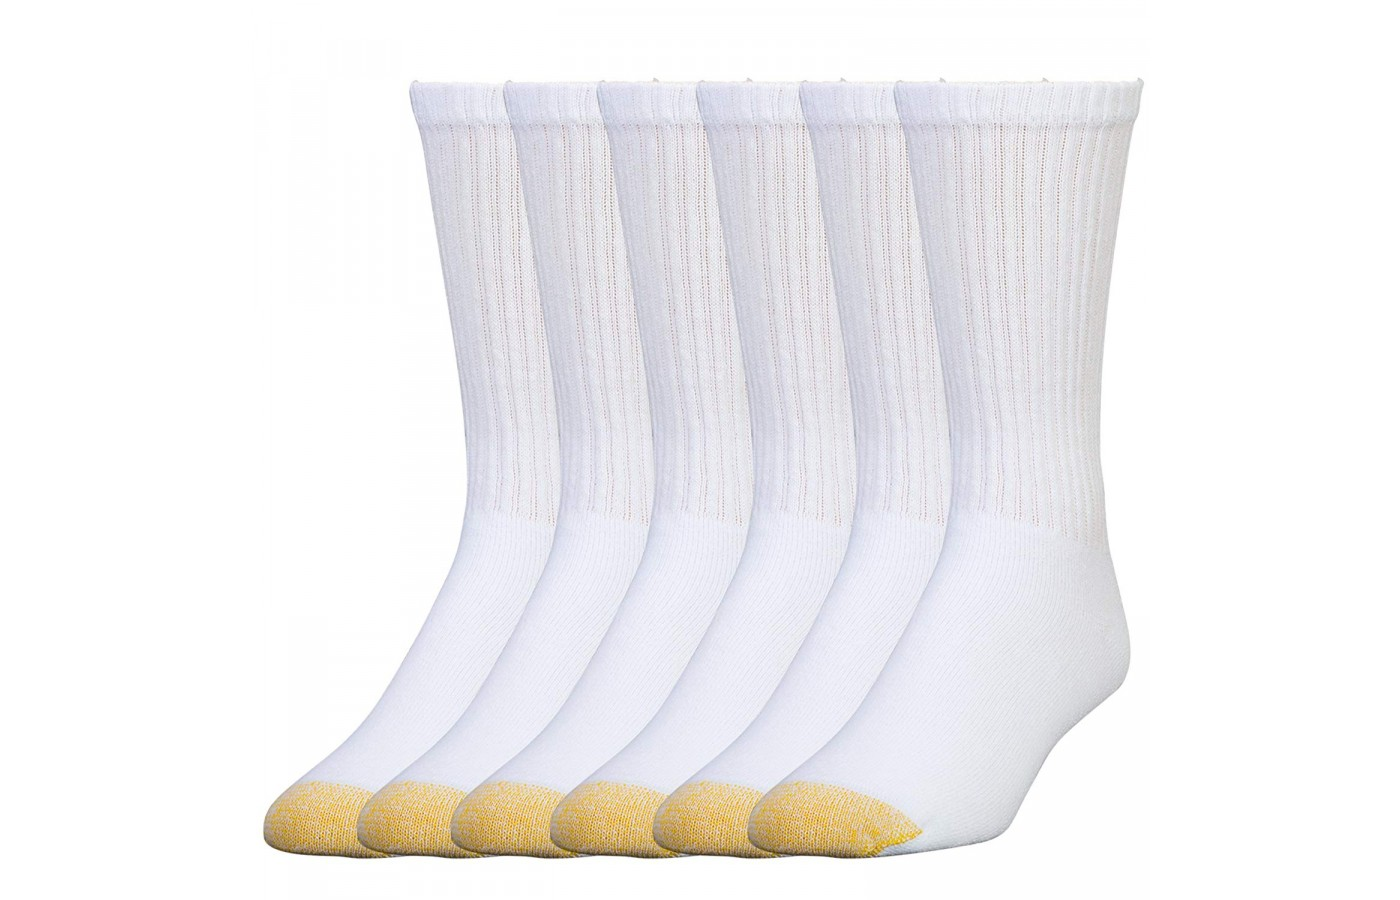 Gold Toe Crew Socks white pack